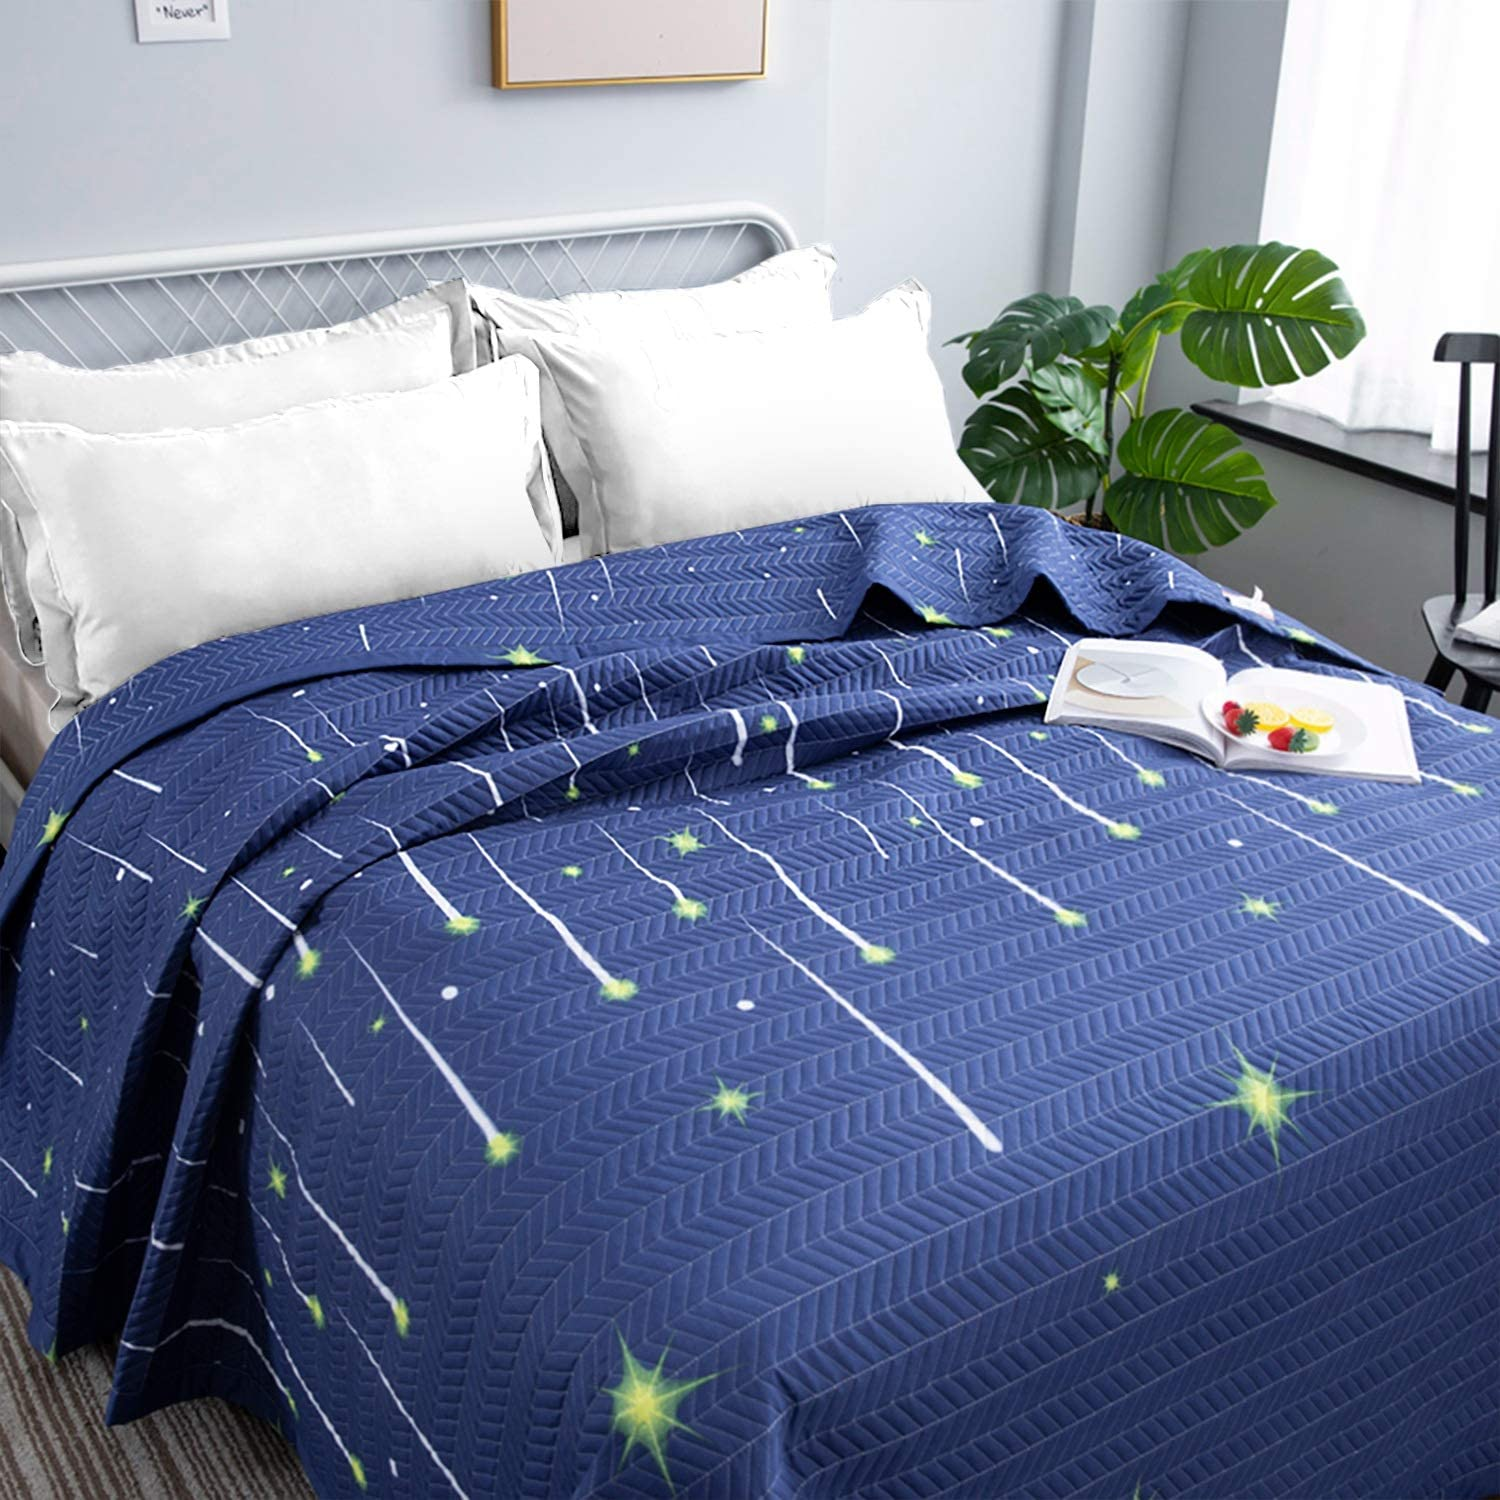 Qucover Night Sky Bedspread Double King Size Dark Blue Soft Lightweight Universe Stars Printed Quilted Bedspread Bed Throws Coverlets 3 Piece Set with 2 Pillowcases,230x250 cm